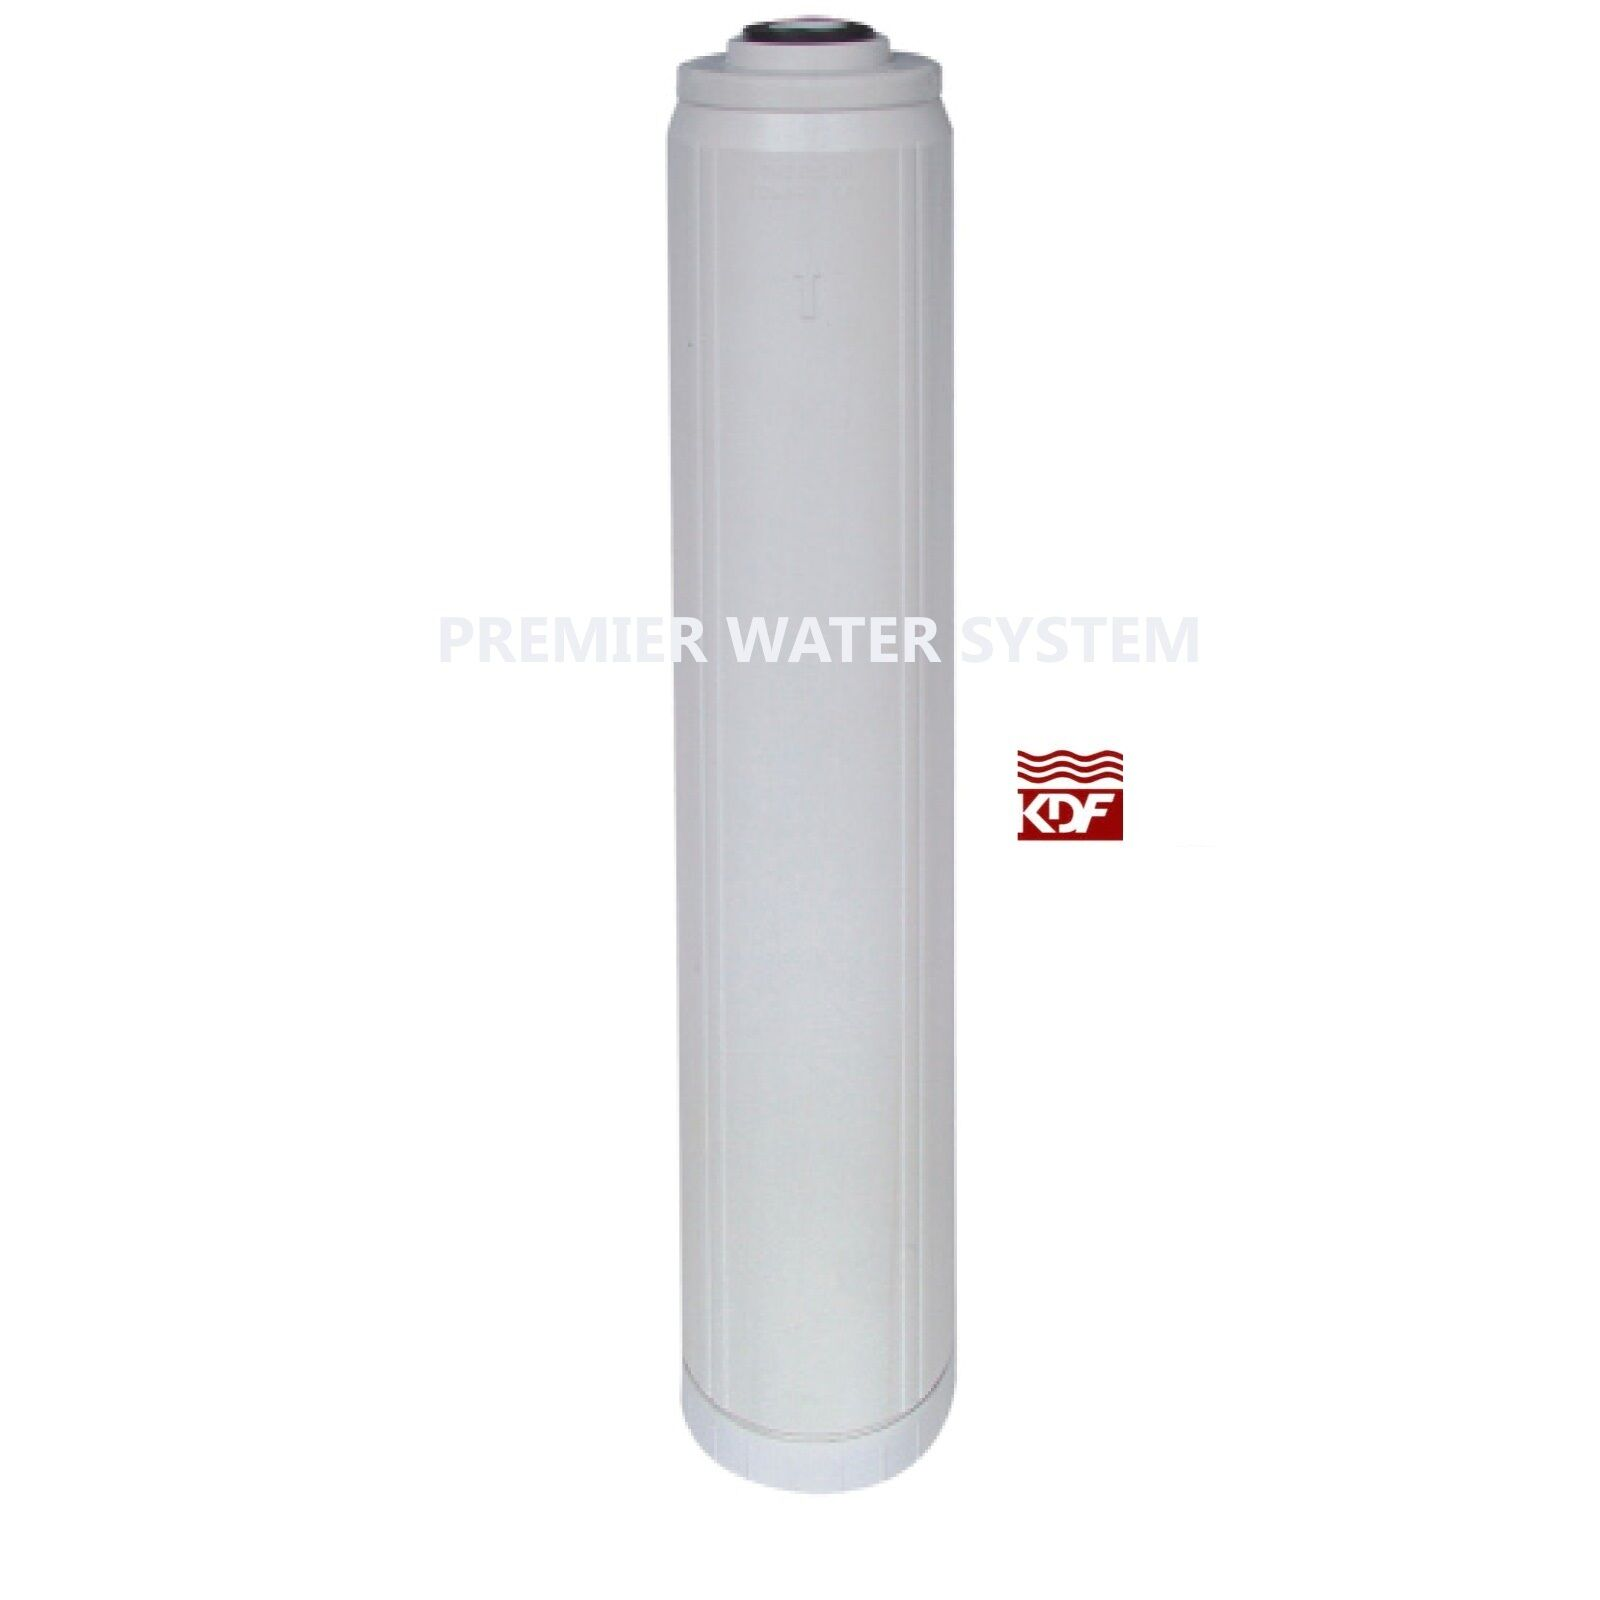 BIG blueE 20  HOUSING WATER FILTER CARTRIDGE   KDF 55 + GAC   20  x 4.5  FILTER